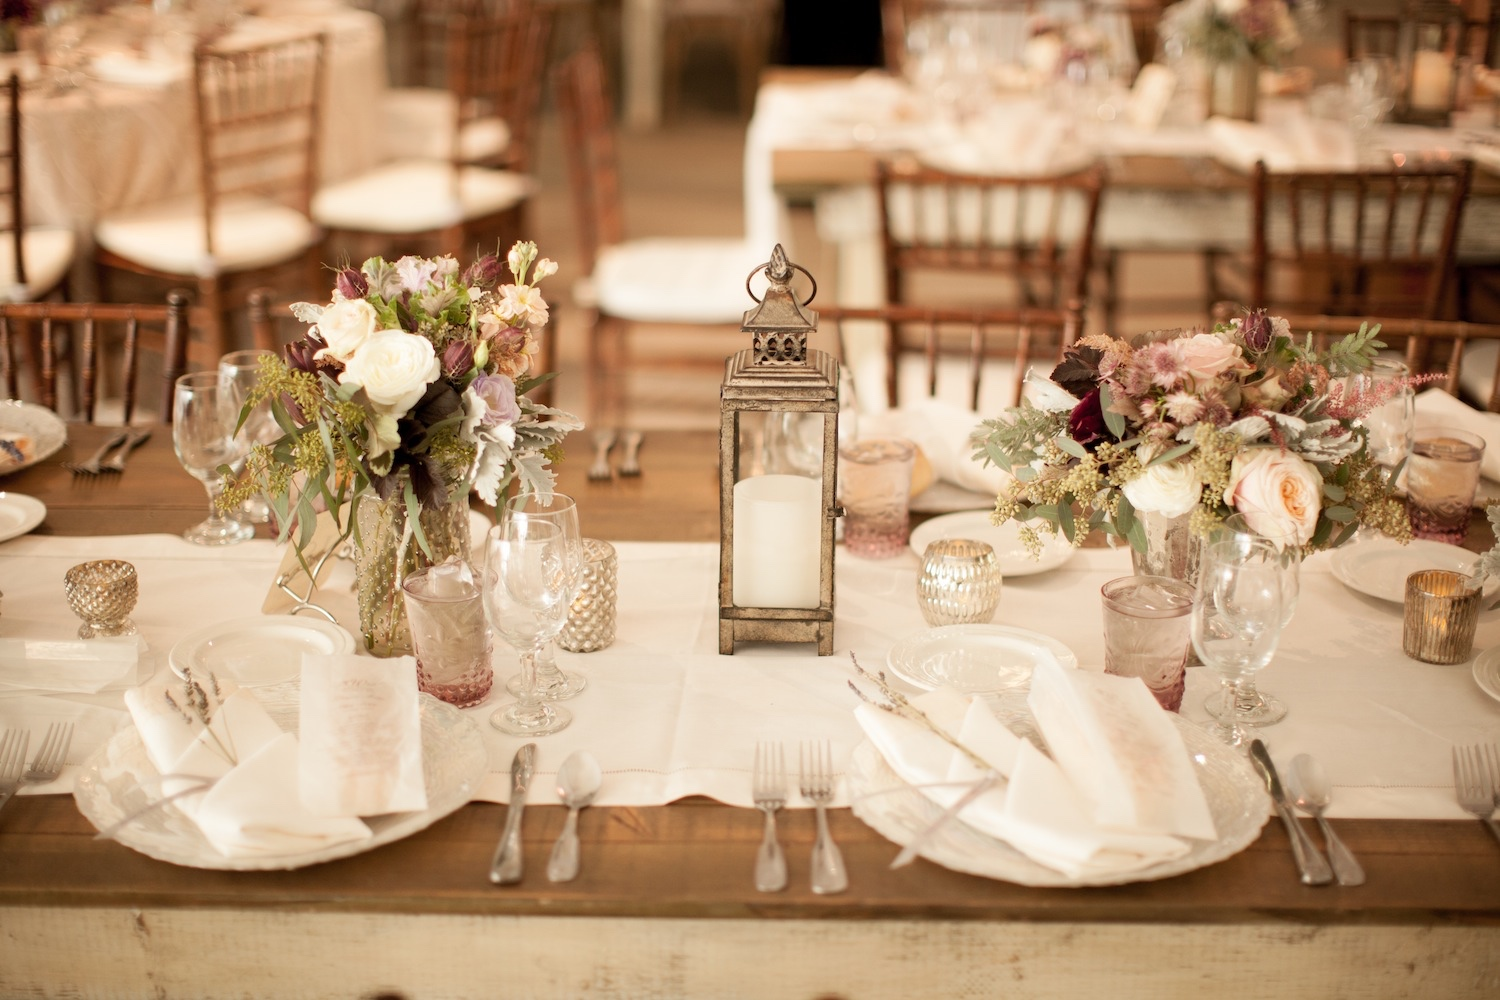 How To Find The Perfect Wedding Planner